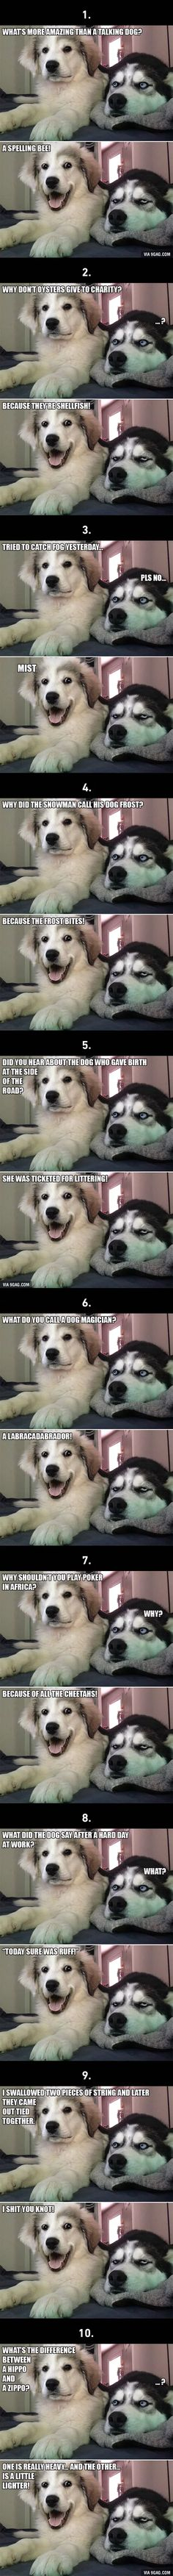 10 Best Bad Puns Dog Memes Ever is part of Puns jokes - More memes, funny videos and pics on Funny Animal Jokes, Dog Jokes, Puns Jokes, Corny Jokes, Really Funny Memes, Stupid Funny Memes, Cute Funny Animals, Funny Animal Pictures, Funny Relatable Memes